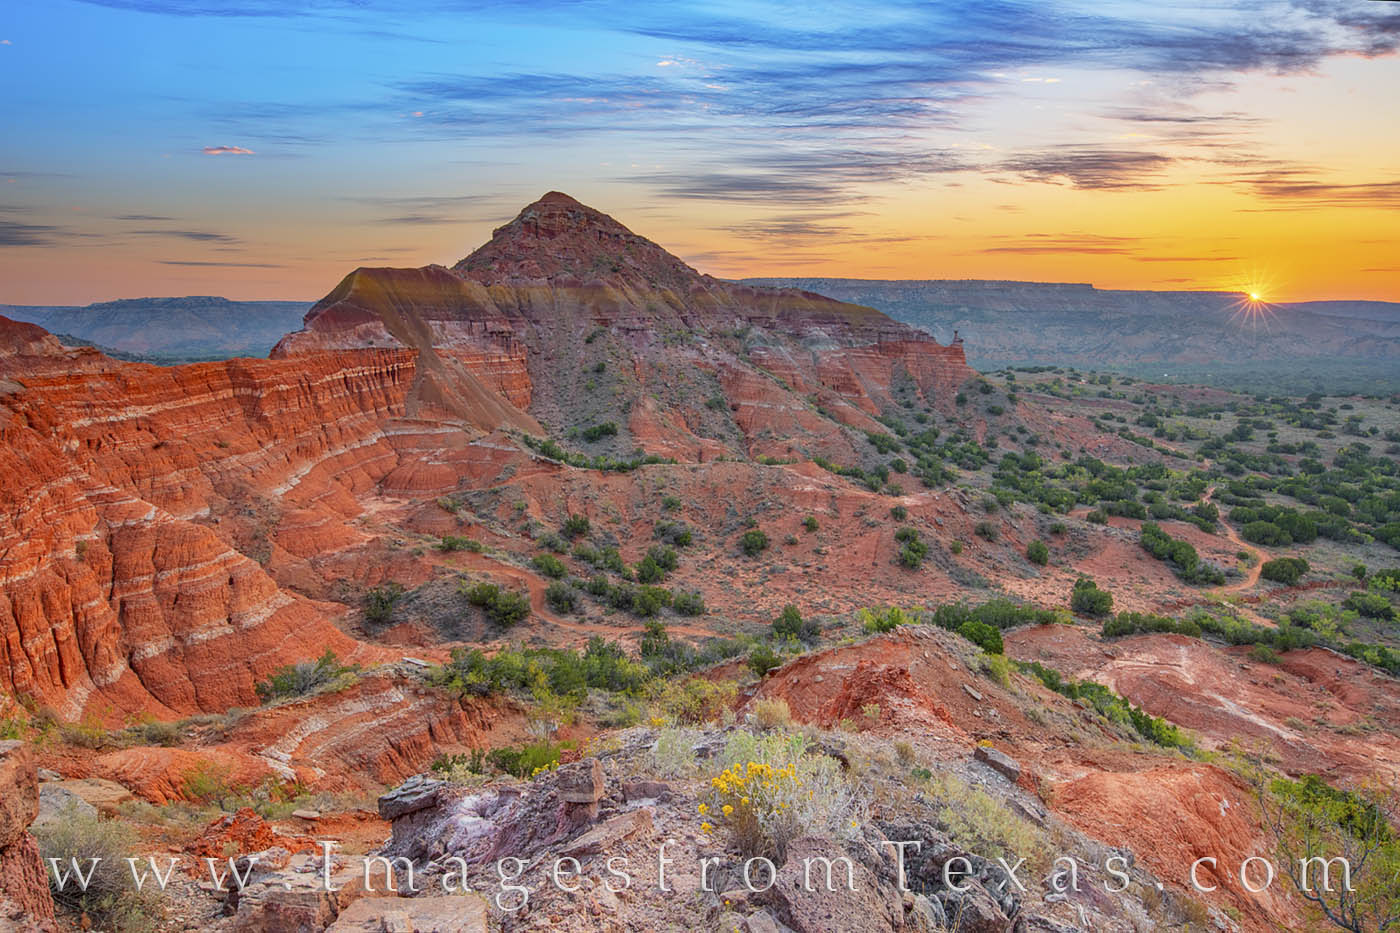 capitol peak, sunrise, palo duro canyon, palo duro prints, west texas, hiking, broom weed, solitude, texas state parks, photo